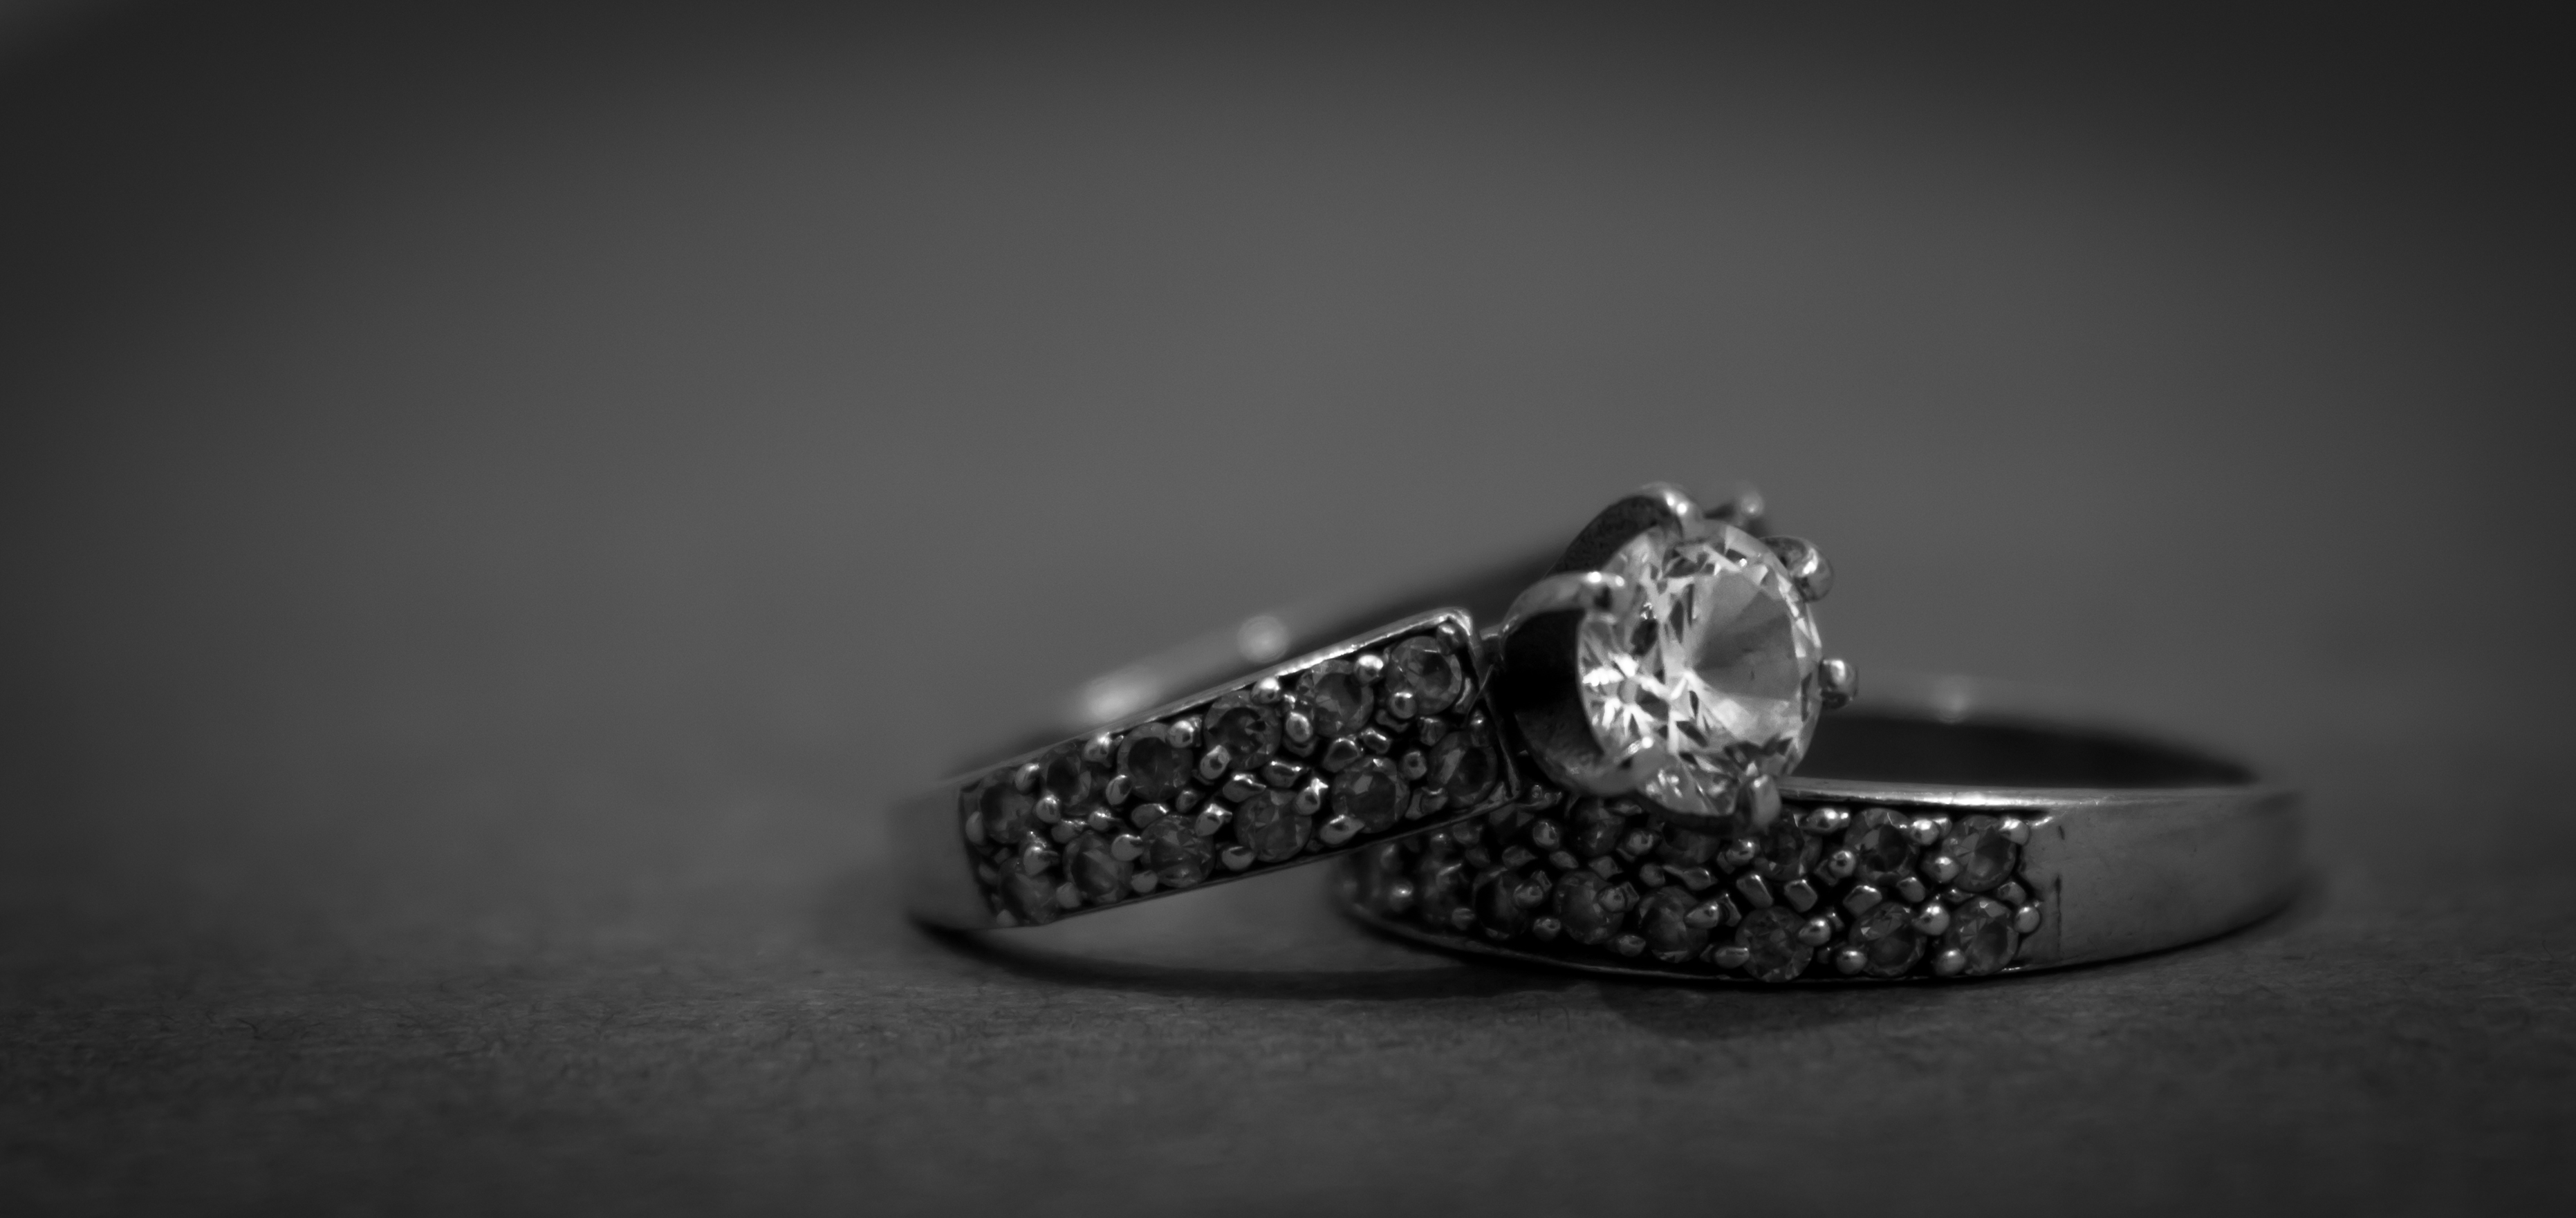 33196 grayscale photo of 2 silver with diamond rings